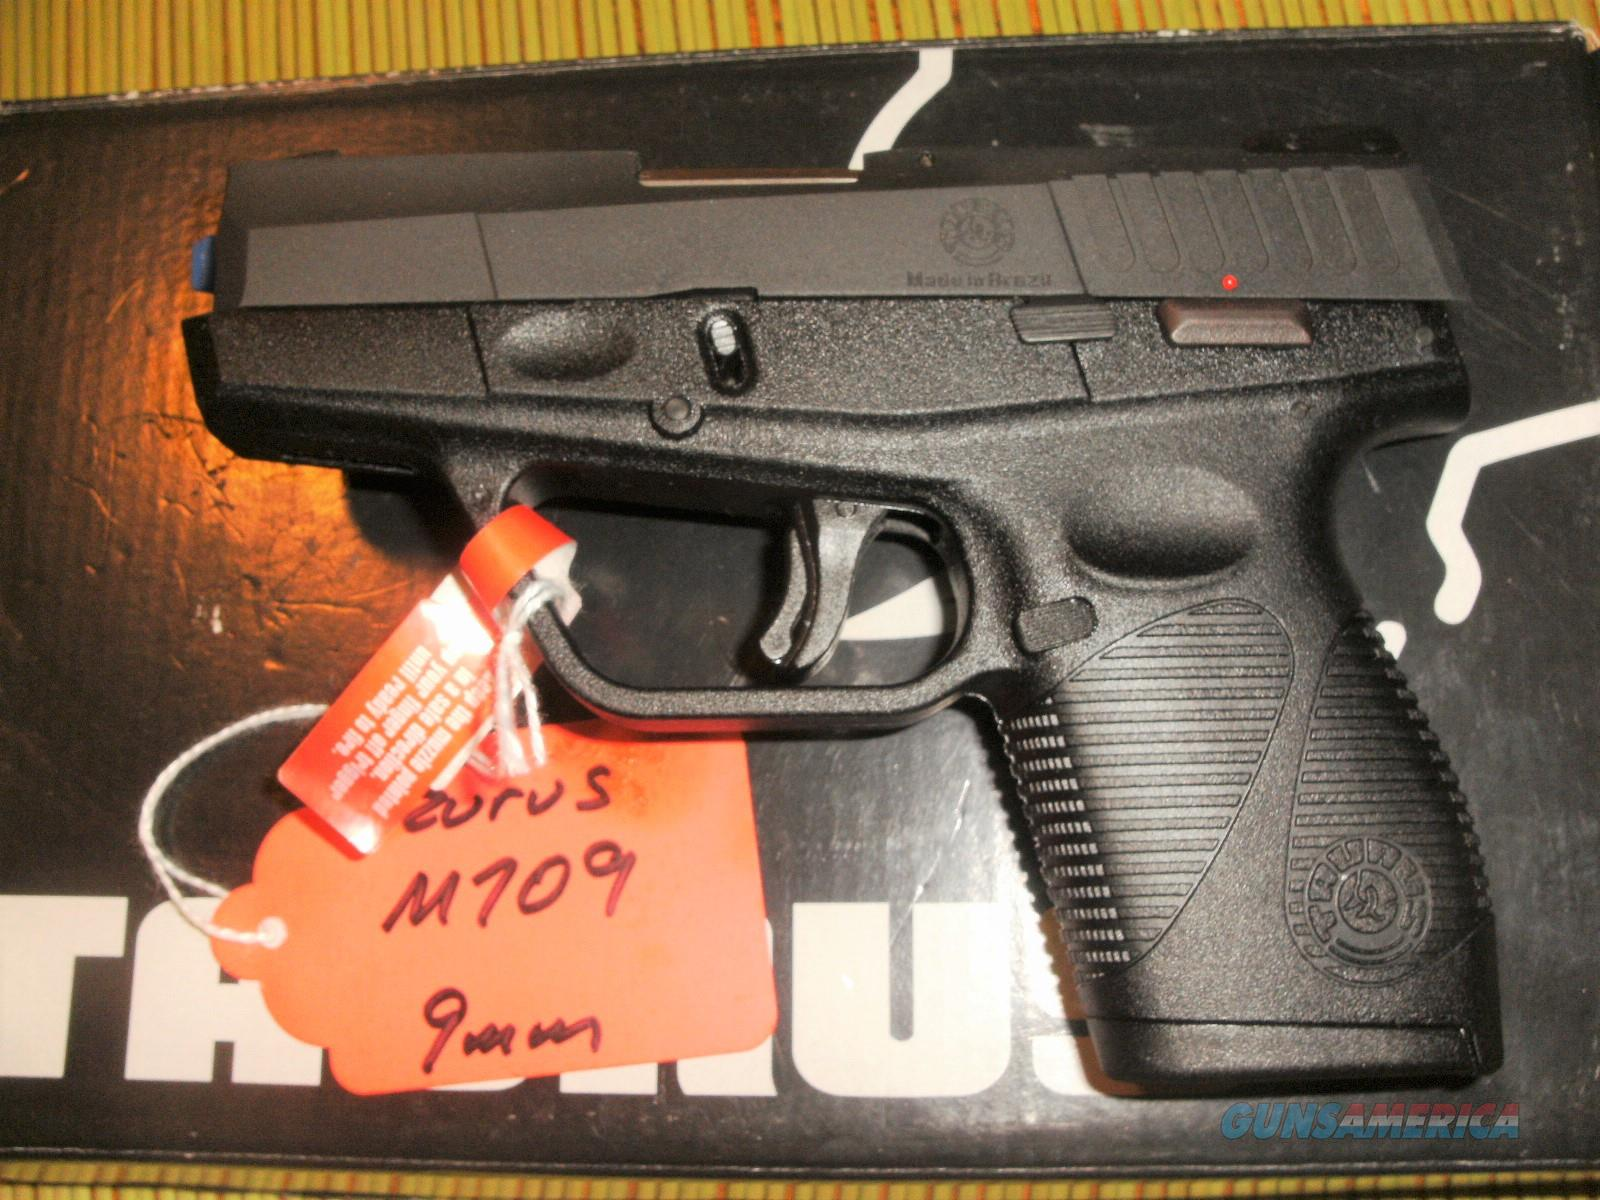 TAURUS 709 SLIM W/FREE LEATHER HOLSTER - GREAT 9MM FOR CCW - NEW IN BOX -  FAST PRIORITY SHIPPING - TXPAT ARMORY LLC